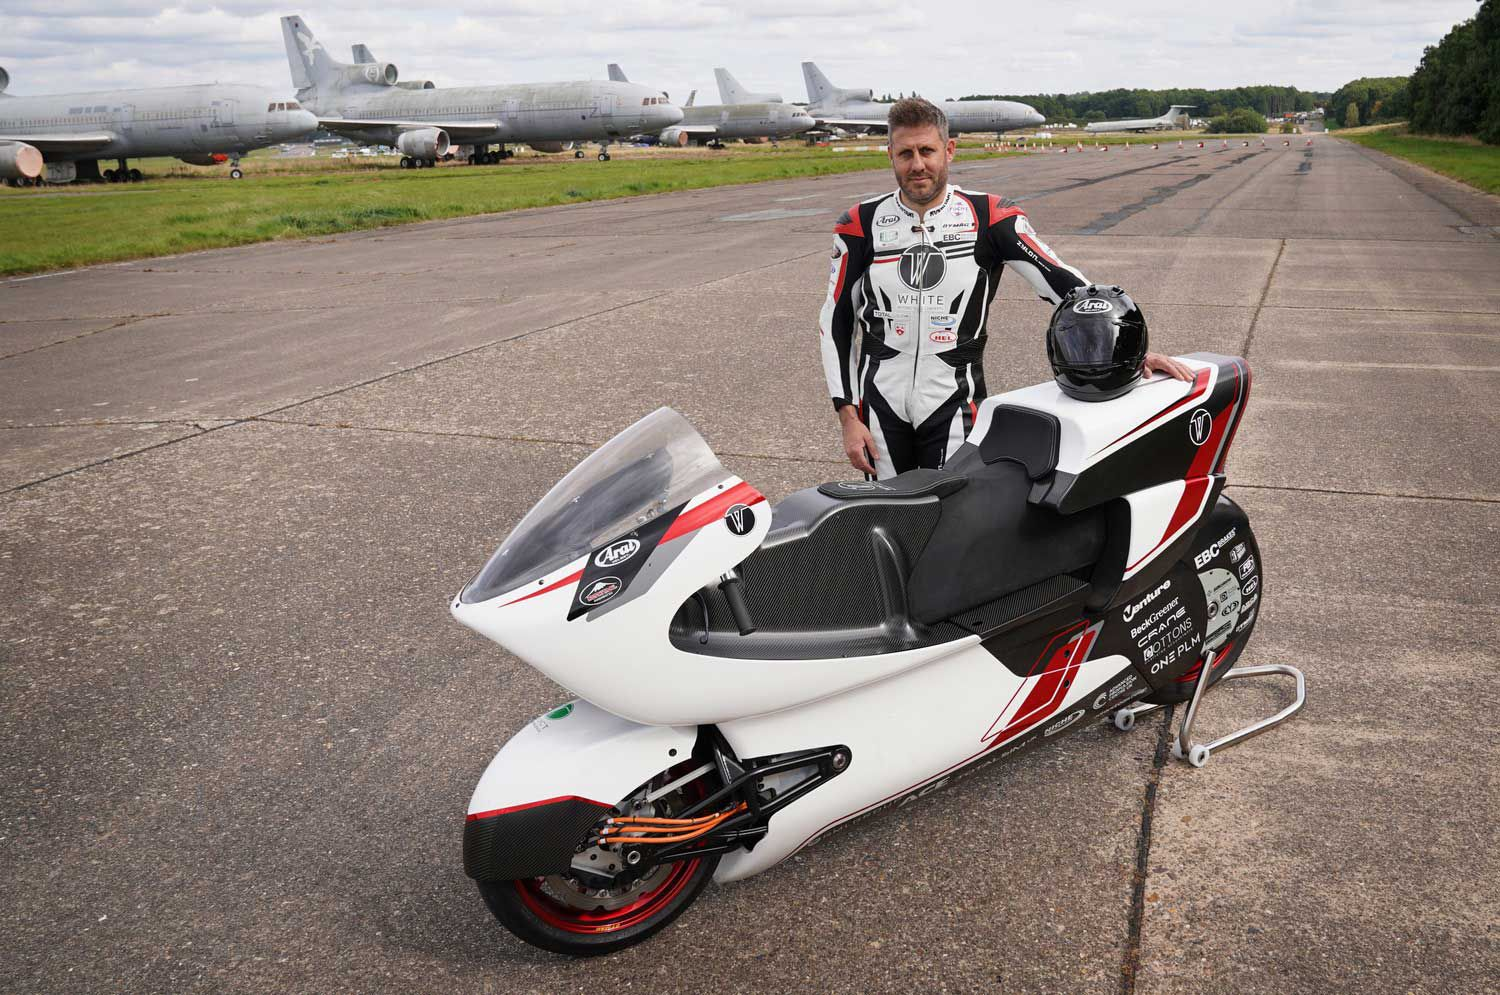 In test runs at an old military airbase, using an interim drivetrain with two-wheel drive, the bike is still hitting 170 mph.